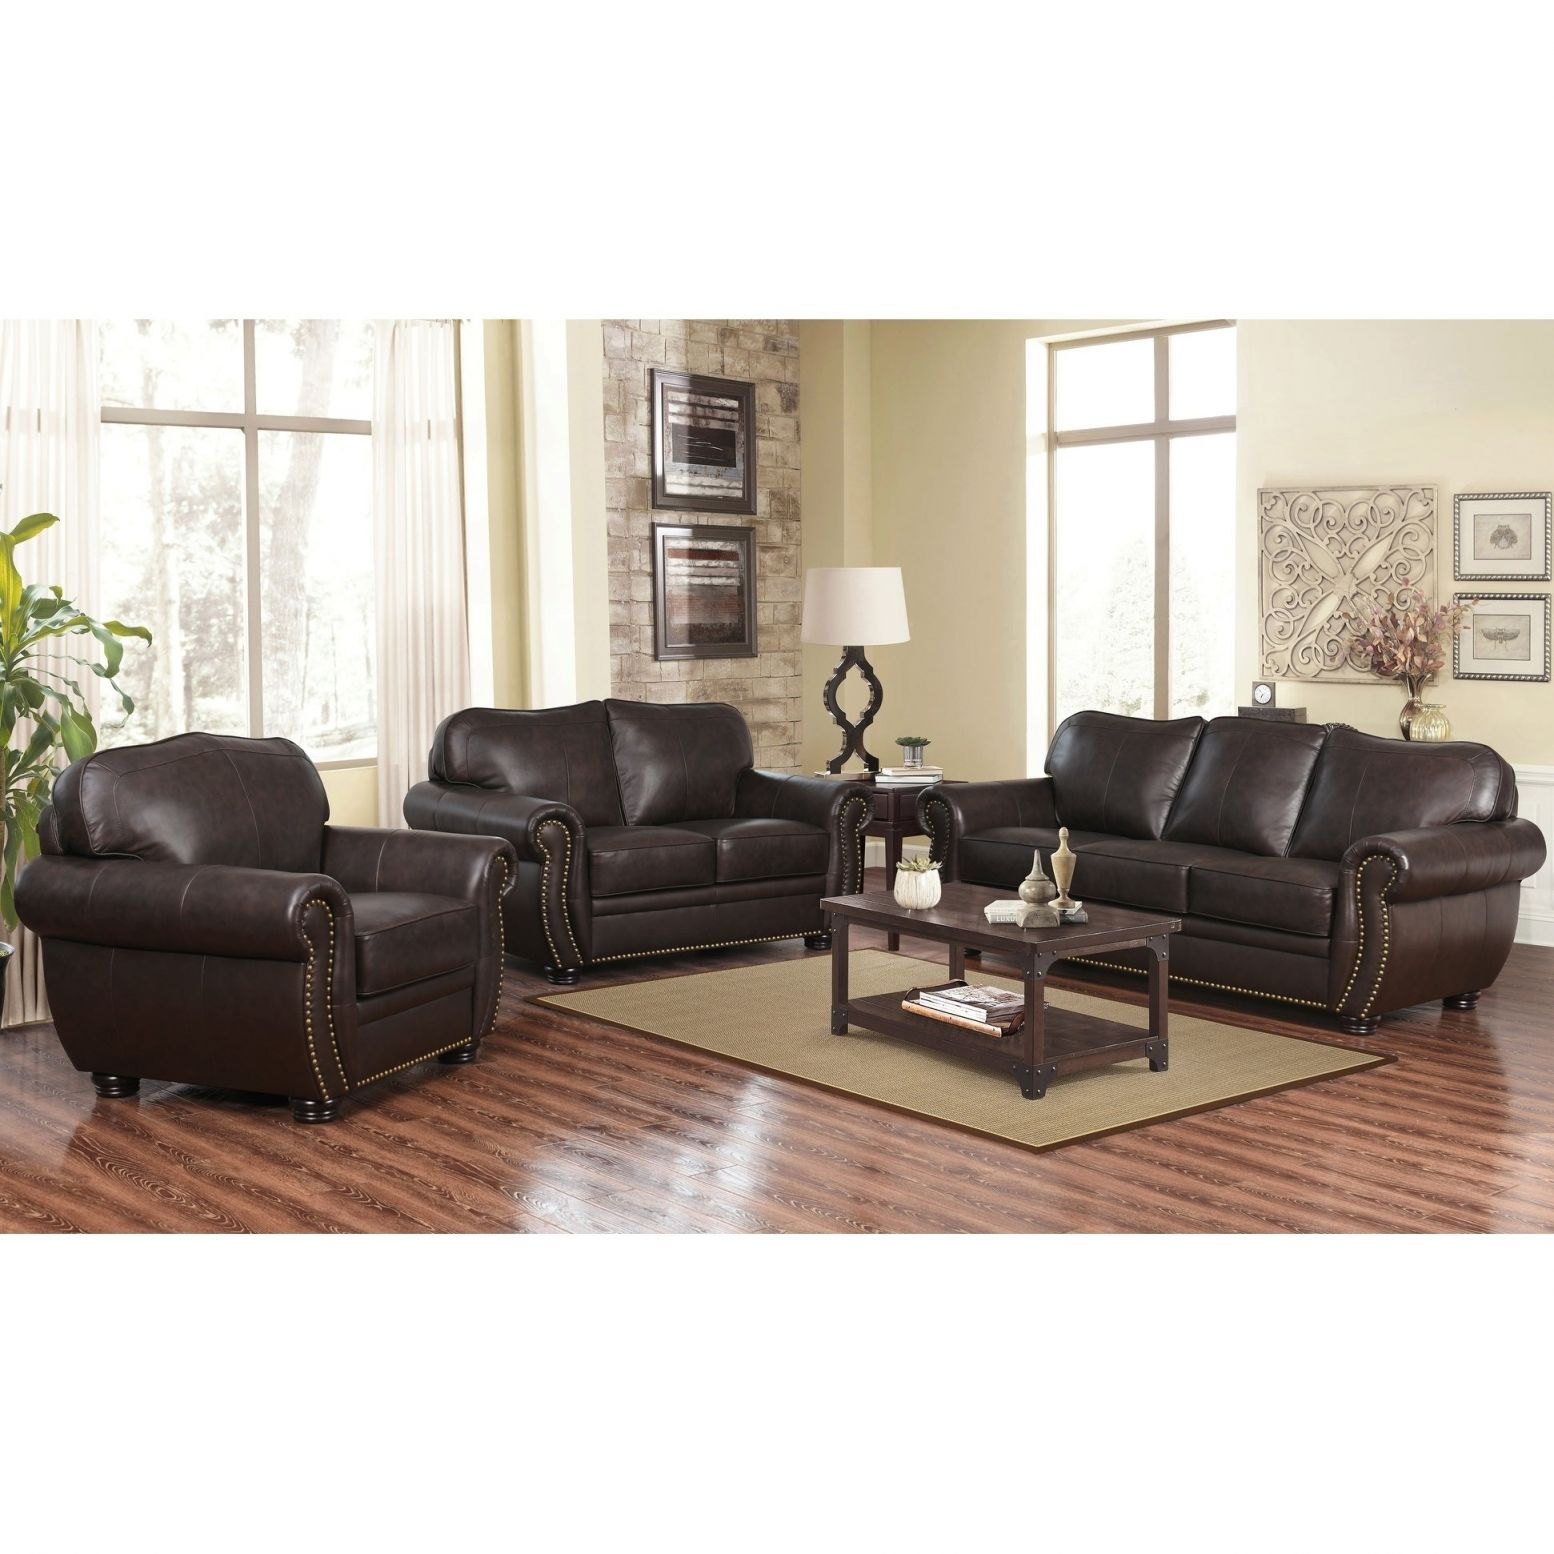 Abbyson Richfield Brown Top Grain Leather 3 Piece Living Room Sofa Set inside Living Room Sets